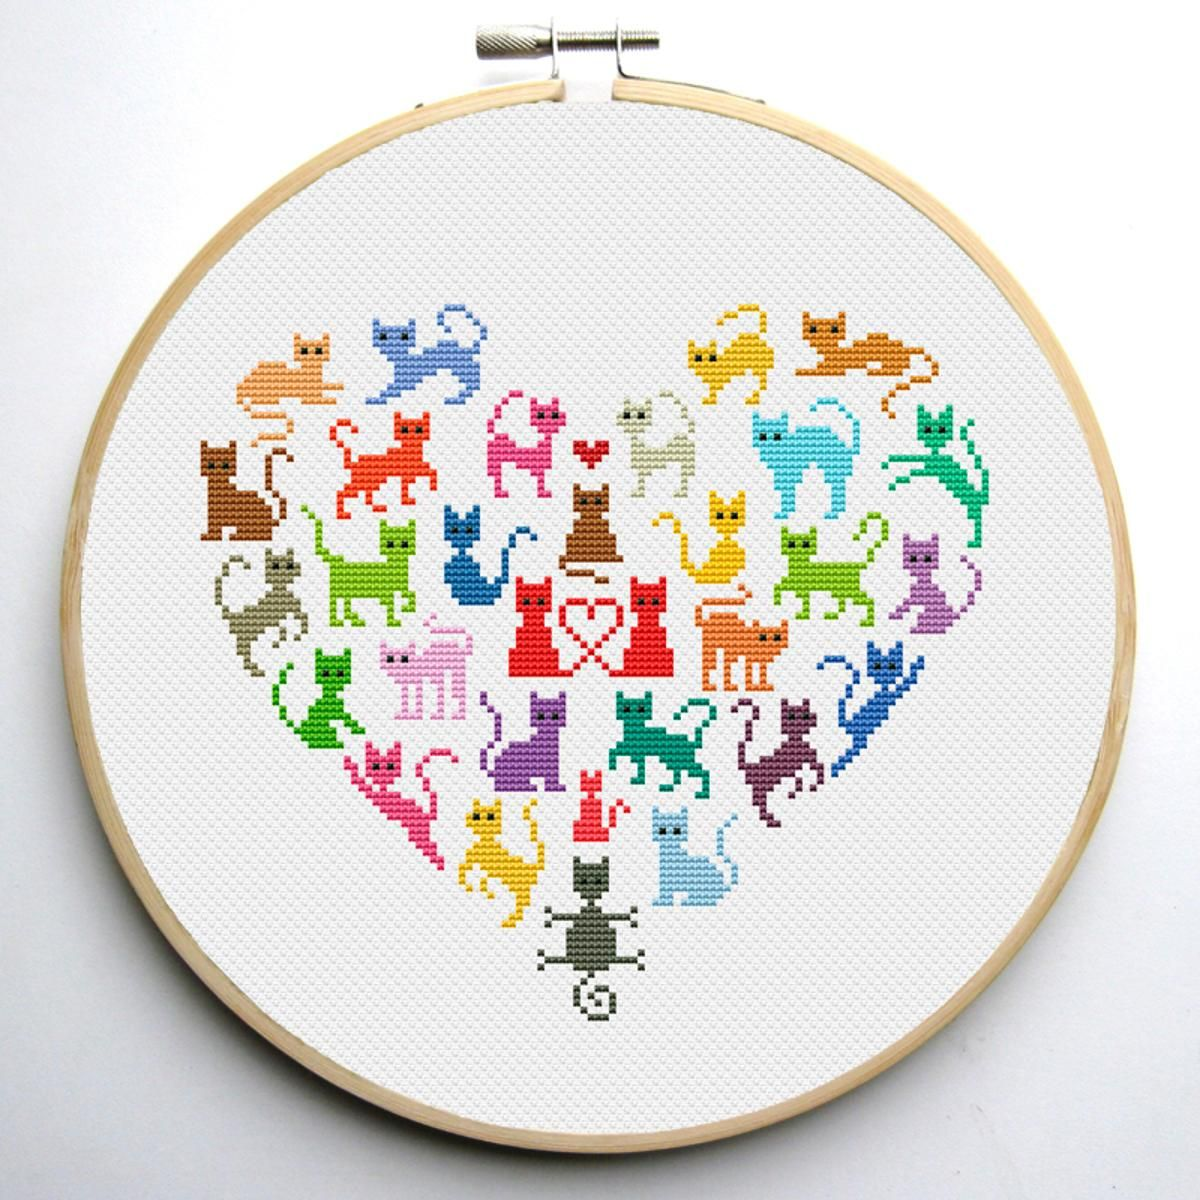 Heart and Cats 2 cross stitch pattern | Cross Stitch Patterns ...